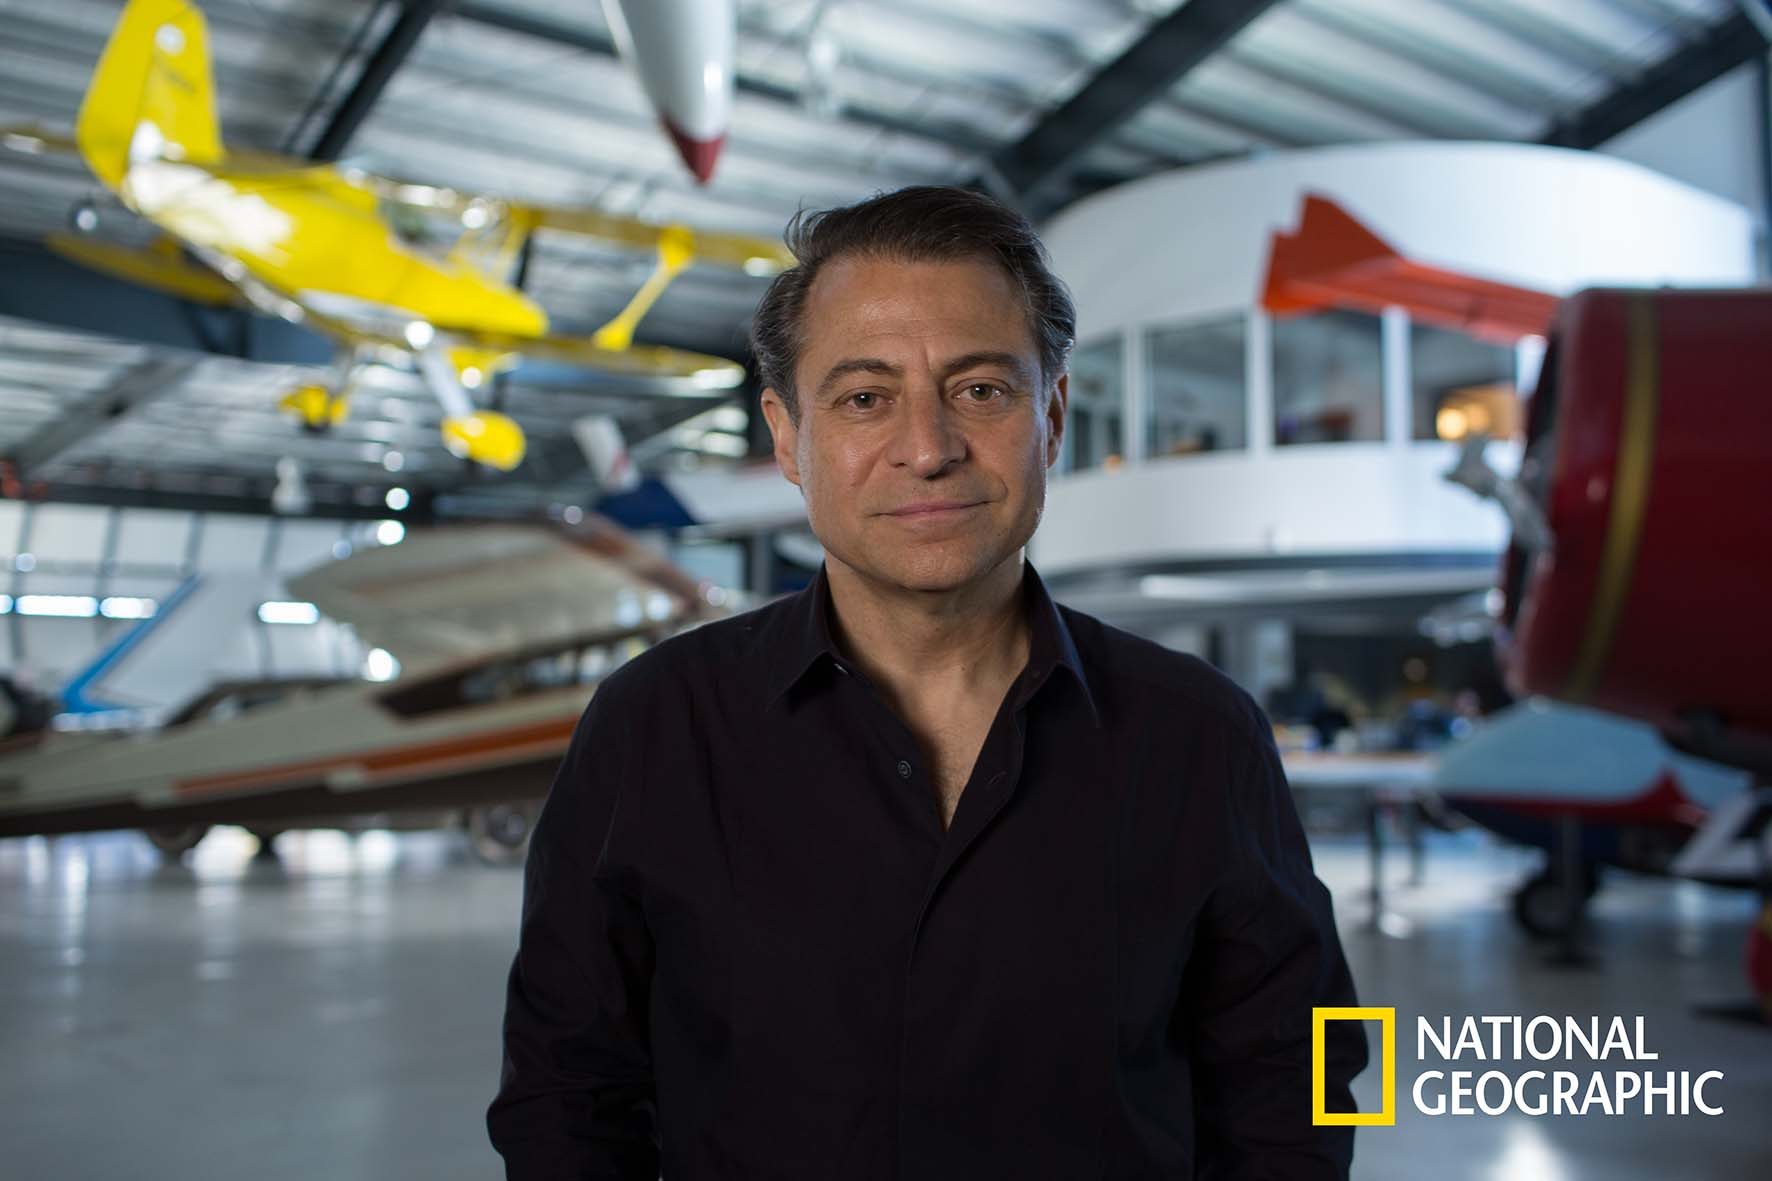 Peter H. Diamandis, Chairman and CEO of XPrize Foundation, Co-founder and Co-chairman of Planetary Resources.